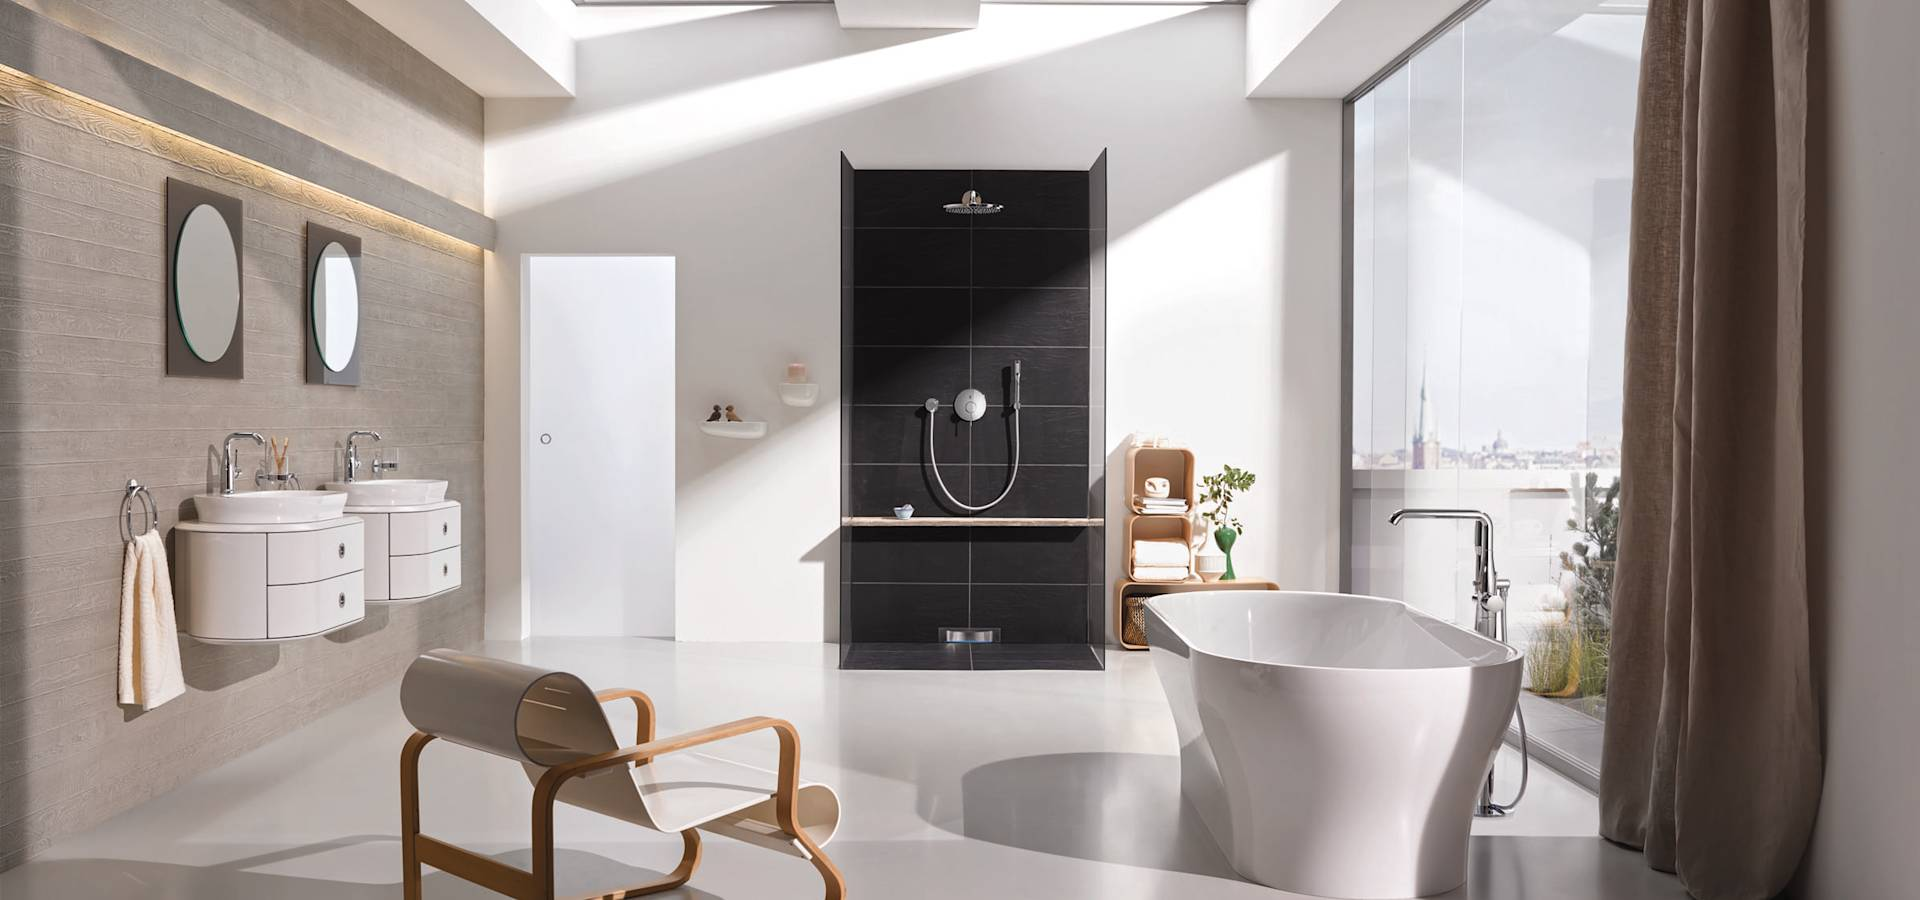 grohe ag grifer a de cocina y ba o en hemer homify. Black Bedroom Furniture Sets. Home Design Ideas